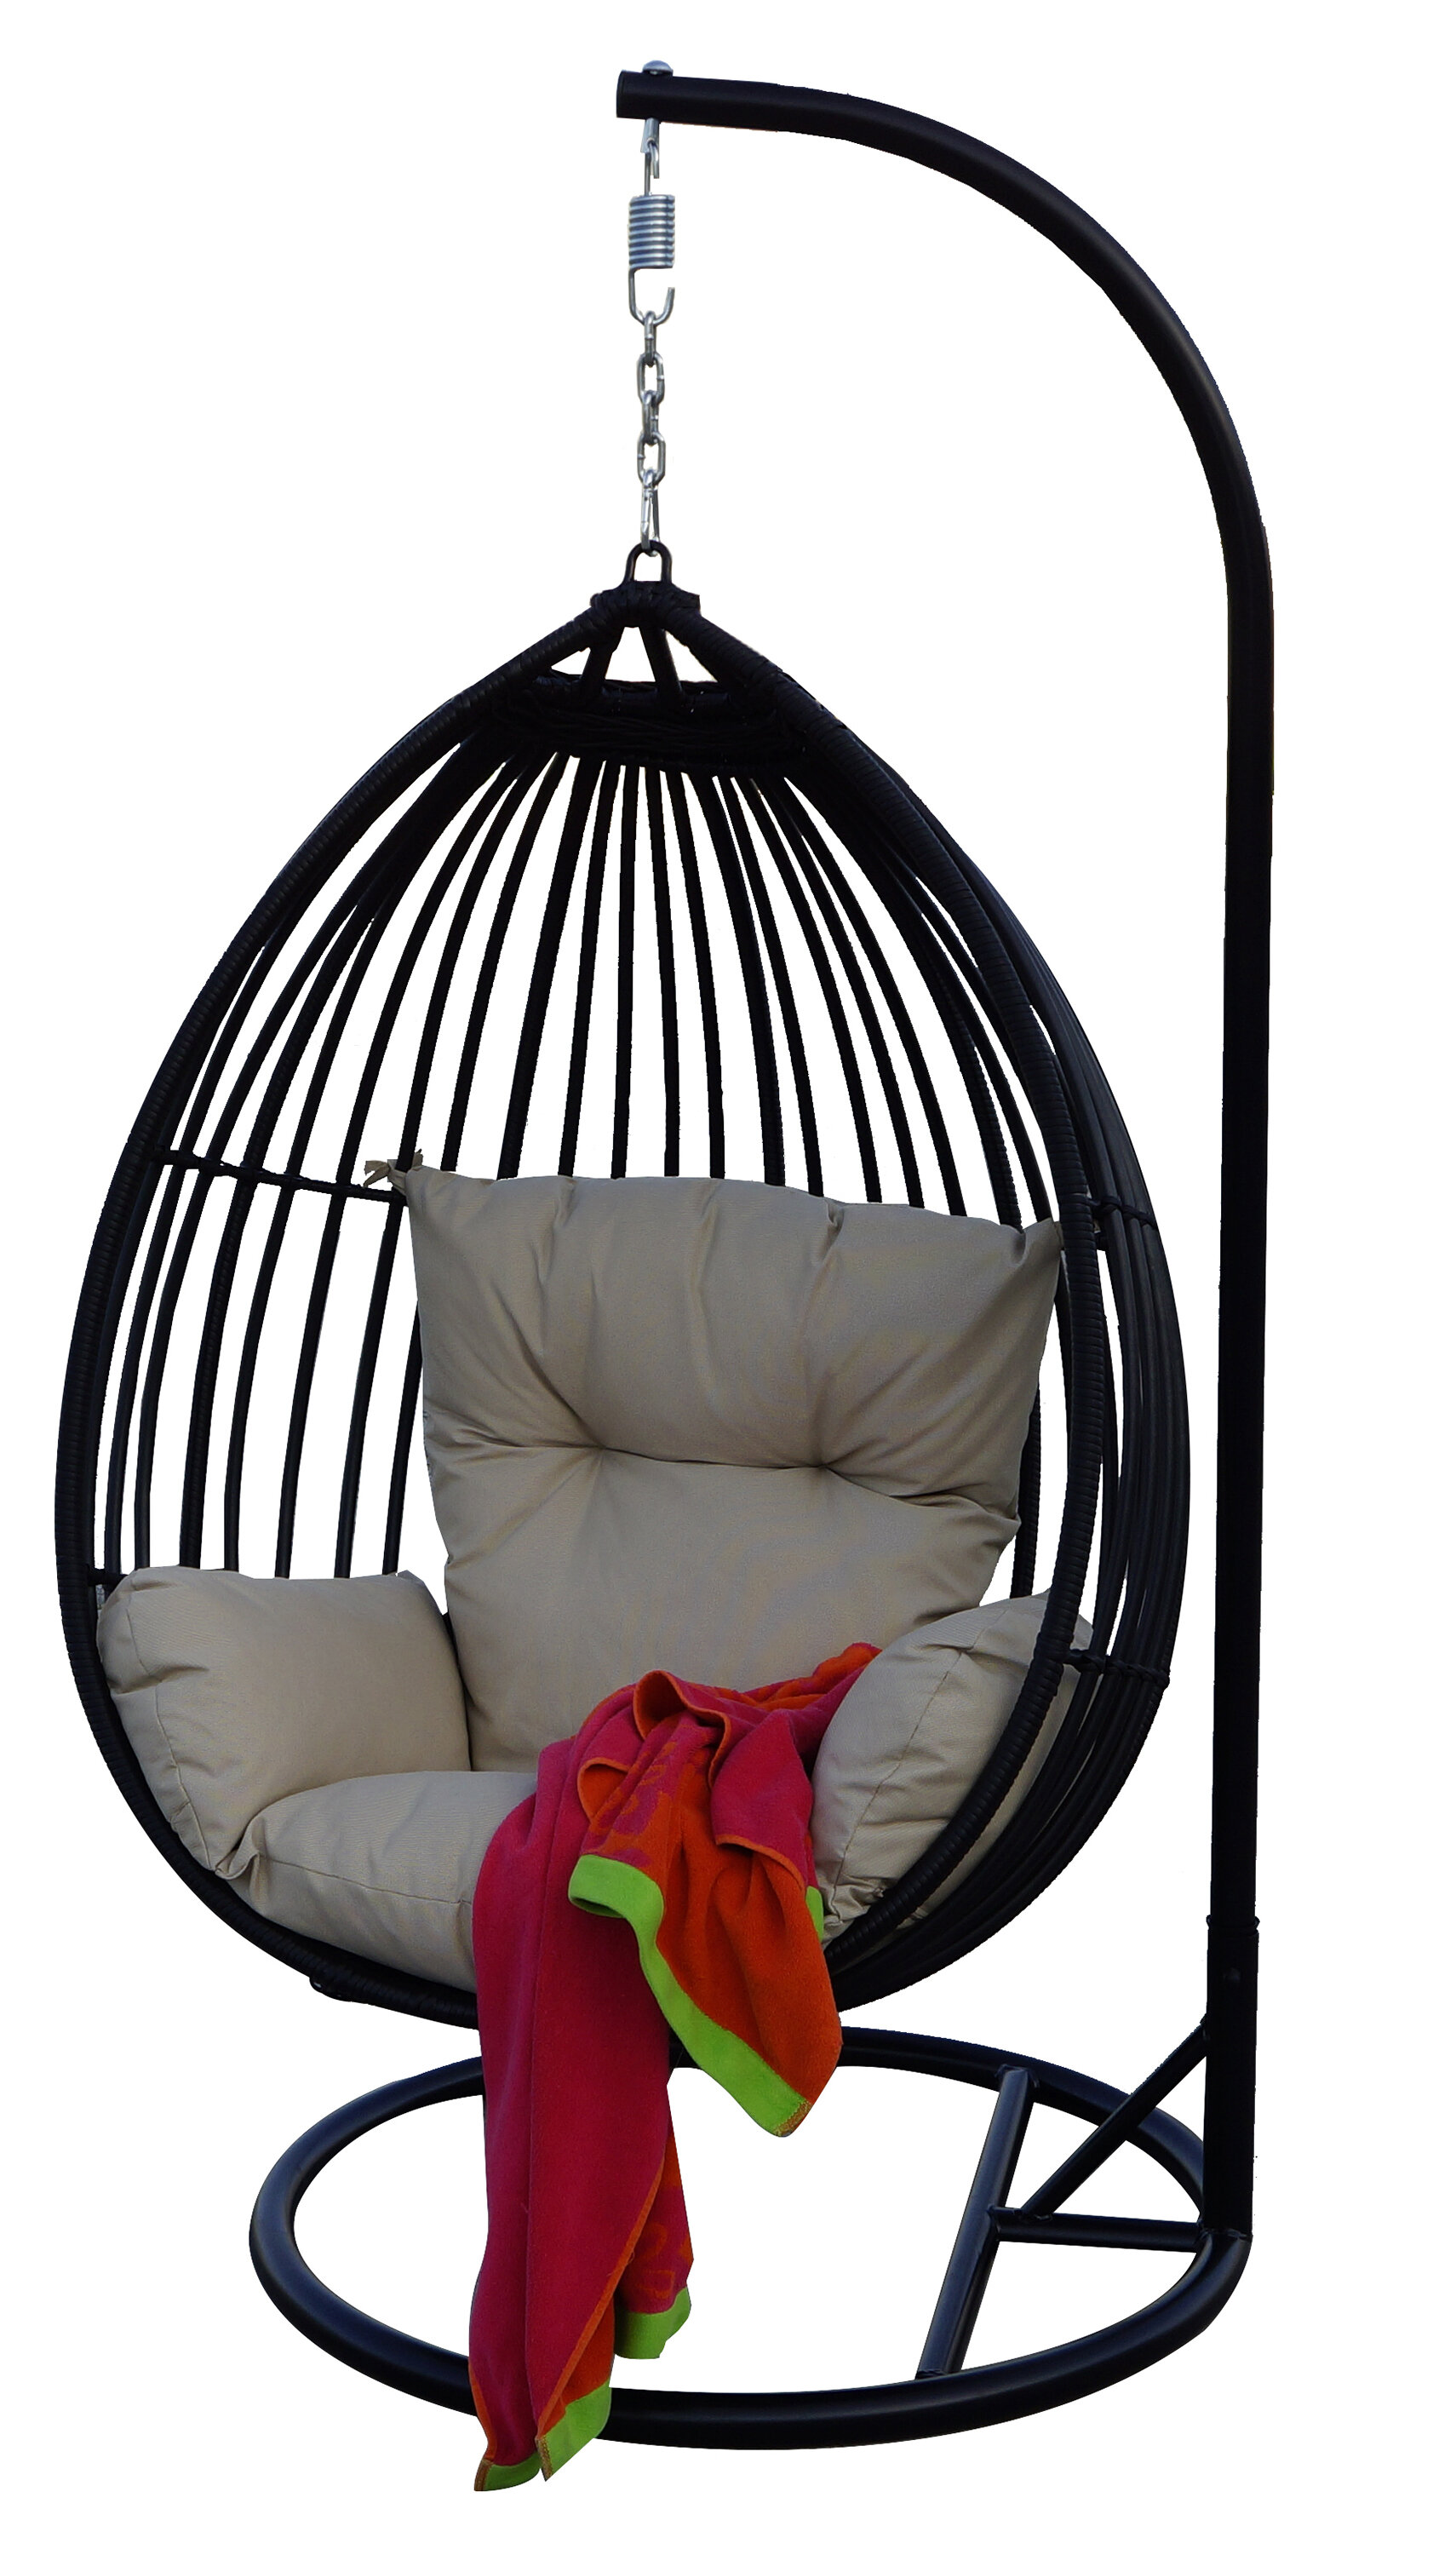 loading and chair with image is ebay portable itm free carrying hammock stand stalwart standing bag frame